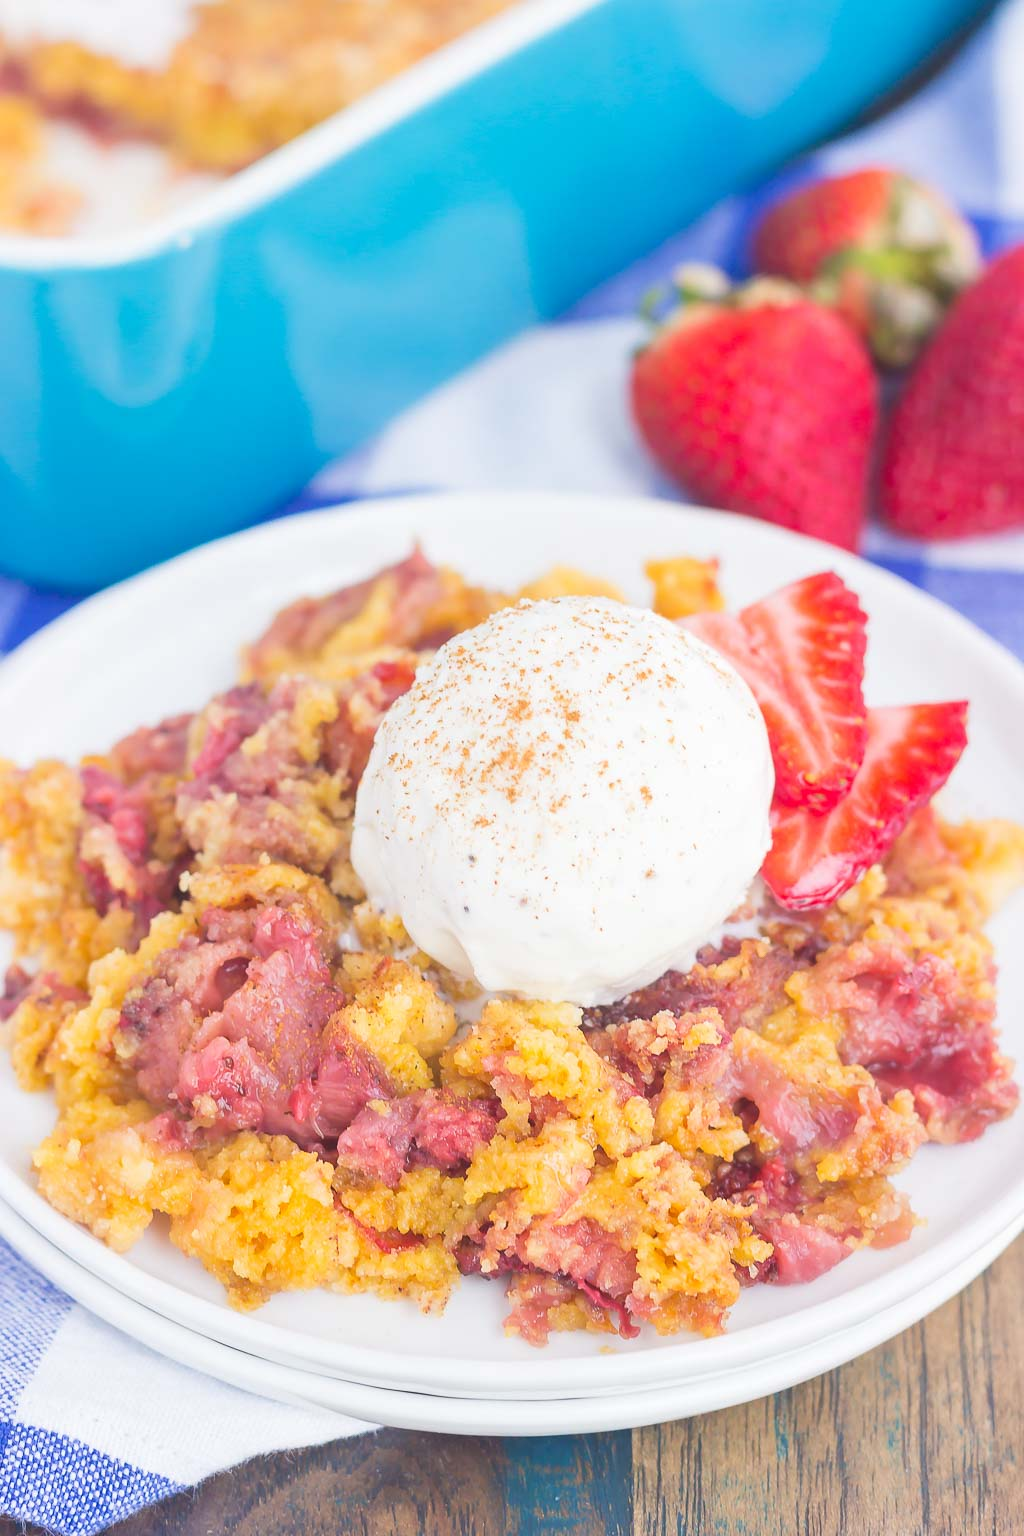 Easy Strawberry Dump Cake 4 Ingredients Pumpkin N Spice